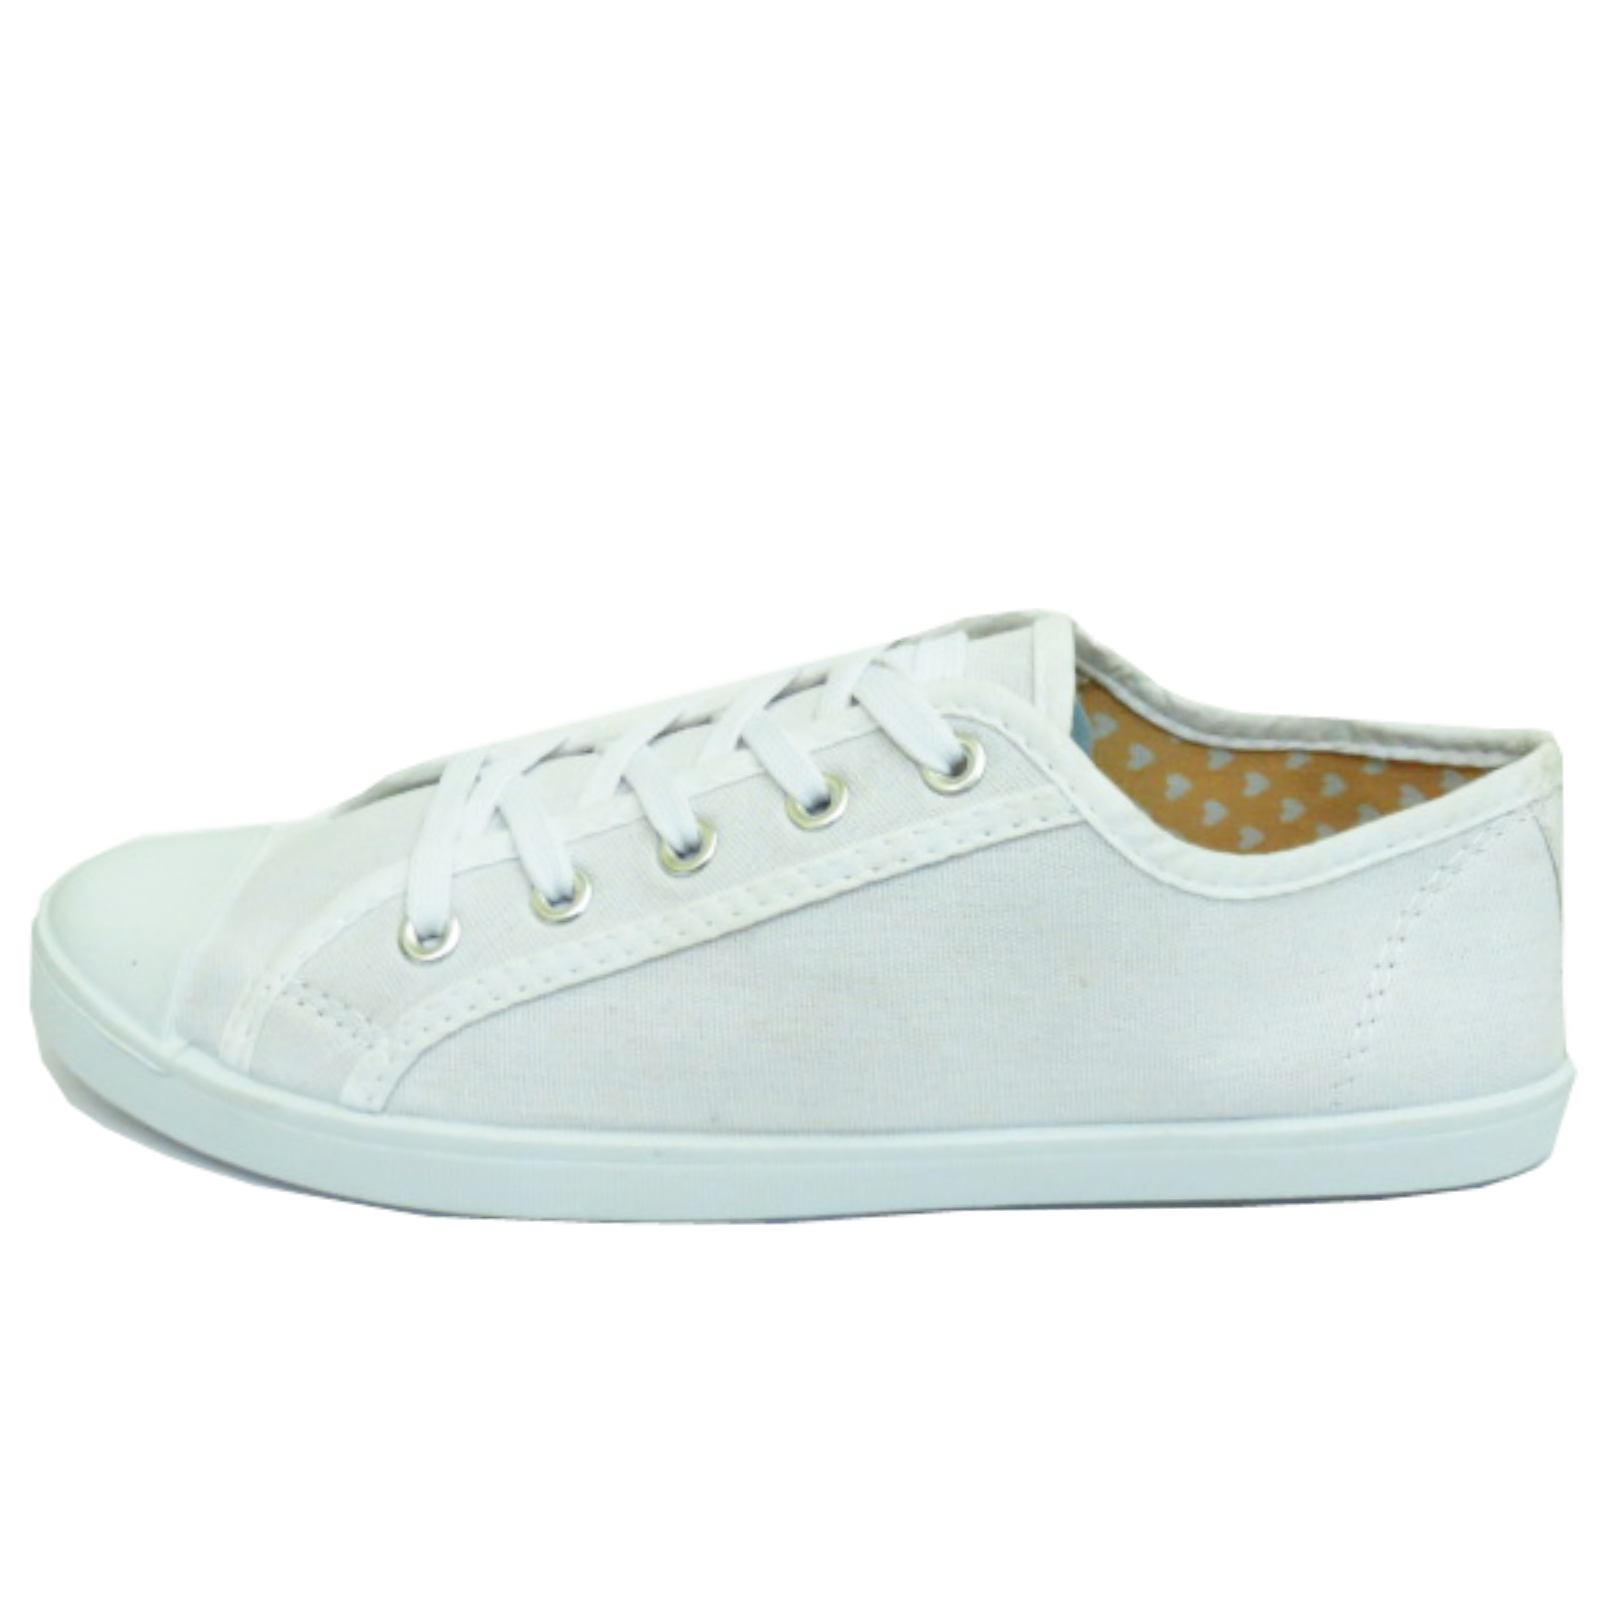 18e173aef36 Sentinel WOMENS WHITE TRAINER FLAT LACE-UP PLIMSOLL PUMPS CASUAL CANVAS  DANCE SHOES 3-9